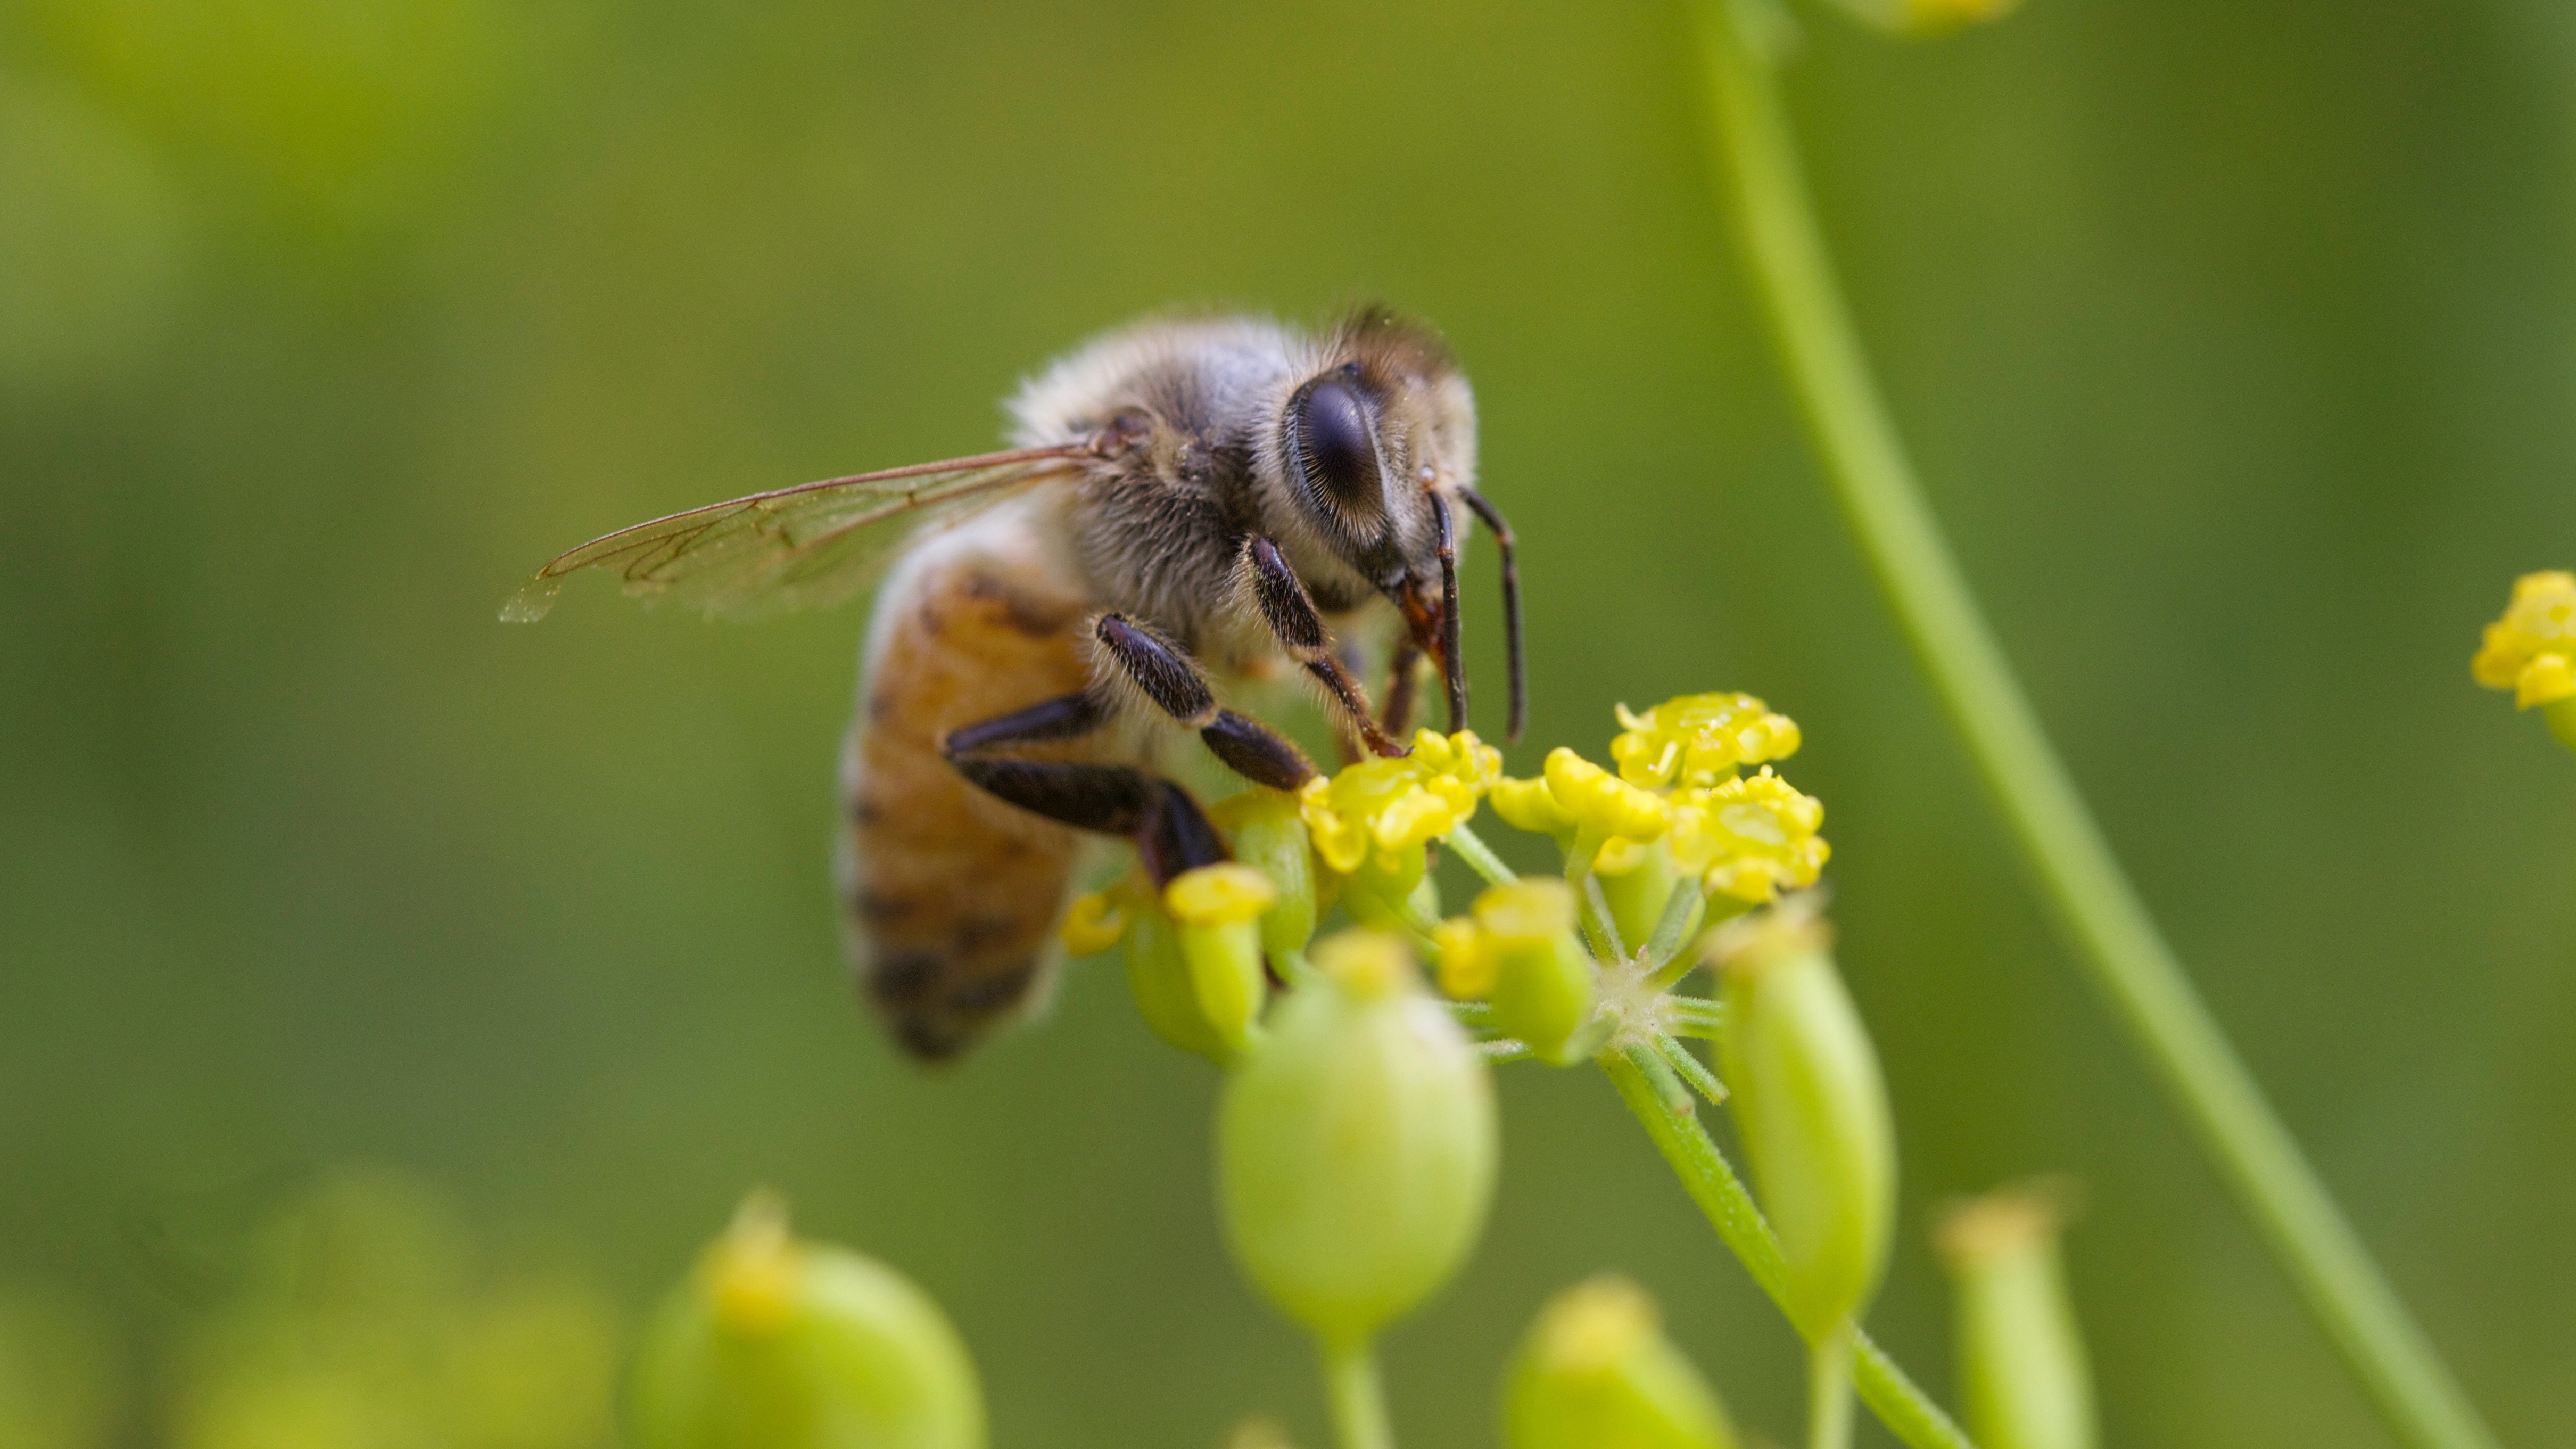 Honeybees are vulnerable to the kind of pesticide sprayed in Dorchester County, but hives — at least those maintained by beekeepers — could have been protected, by the timing of the spraying or by physical barriers. They weren't, and millions of bees died. (Photo by Keith McDuffee/Flickr)